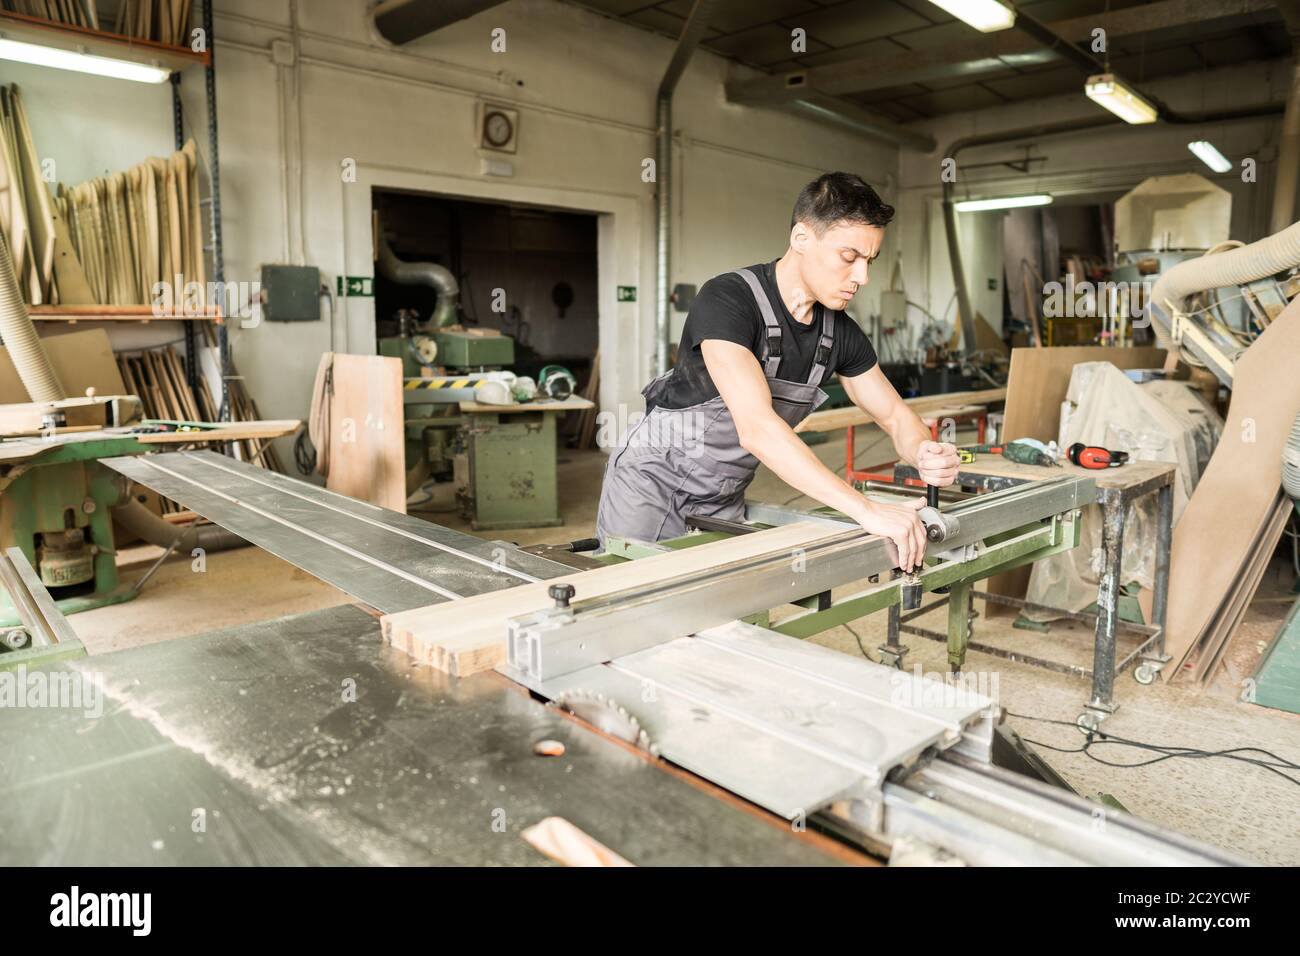 Worker cutting on a sliding table saw in a factory. Mid shot. Stock Photo